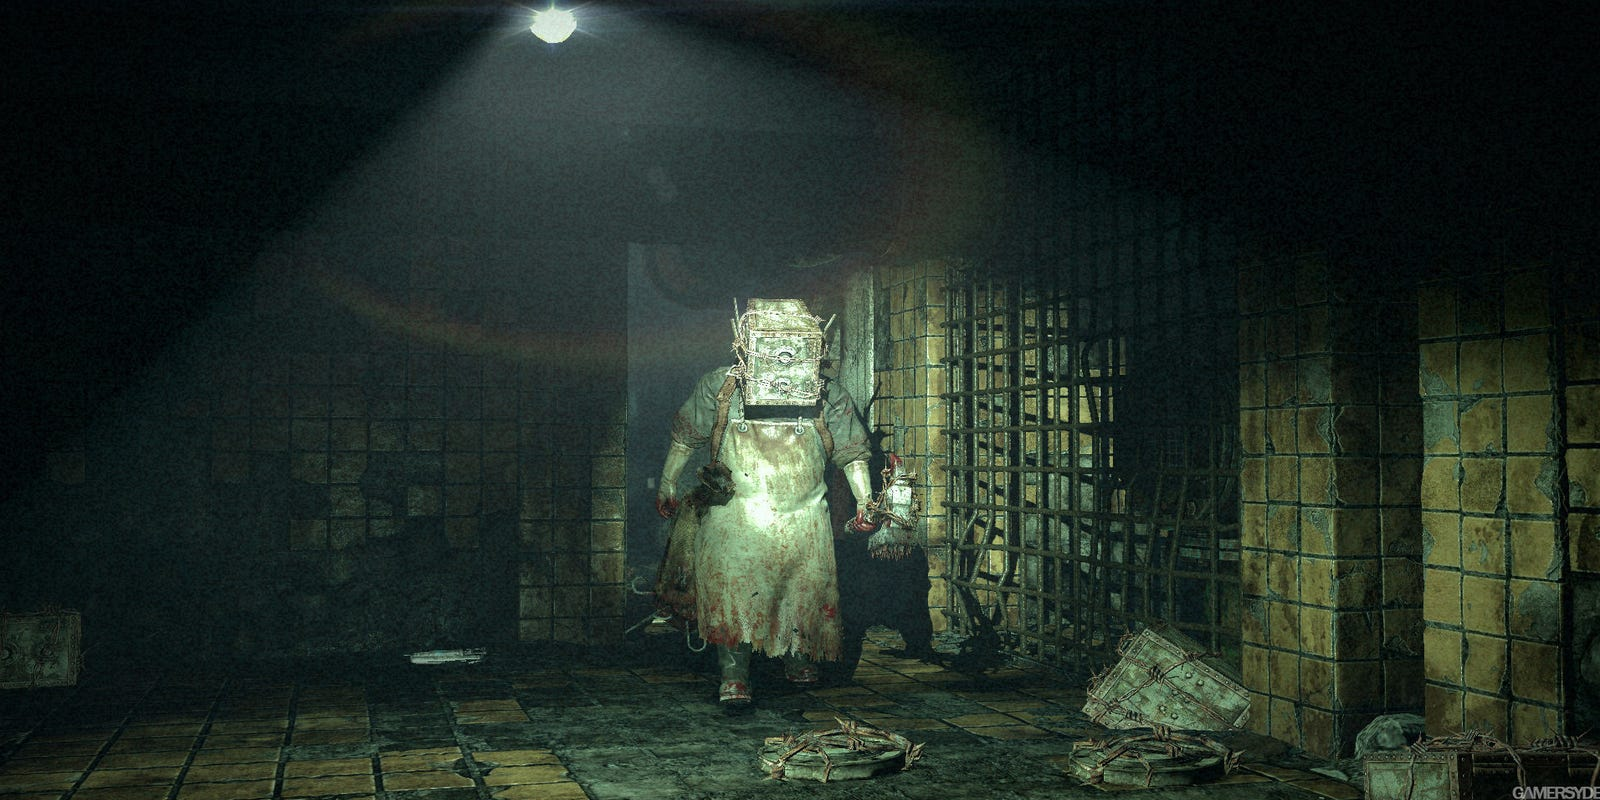 Technobubble: The Evil Within game review